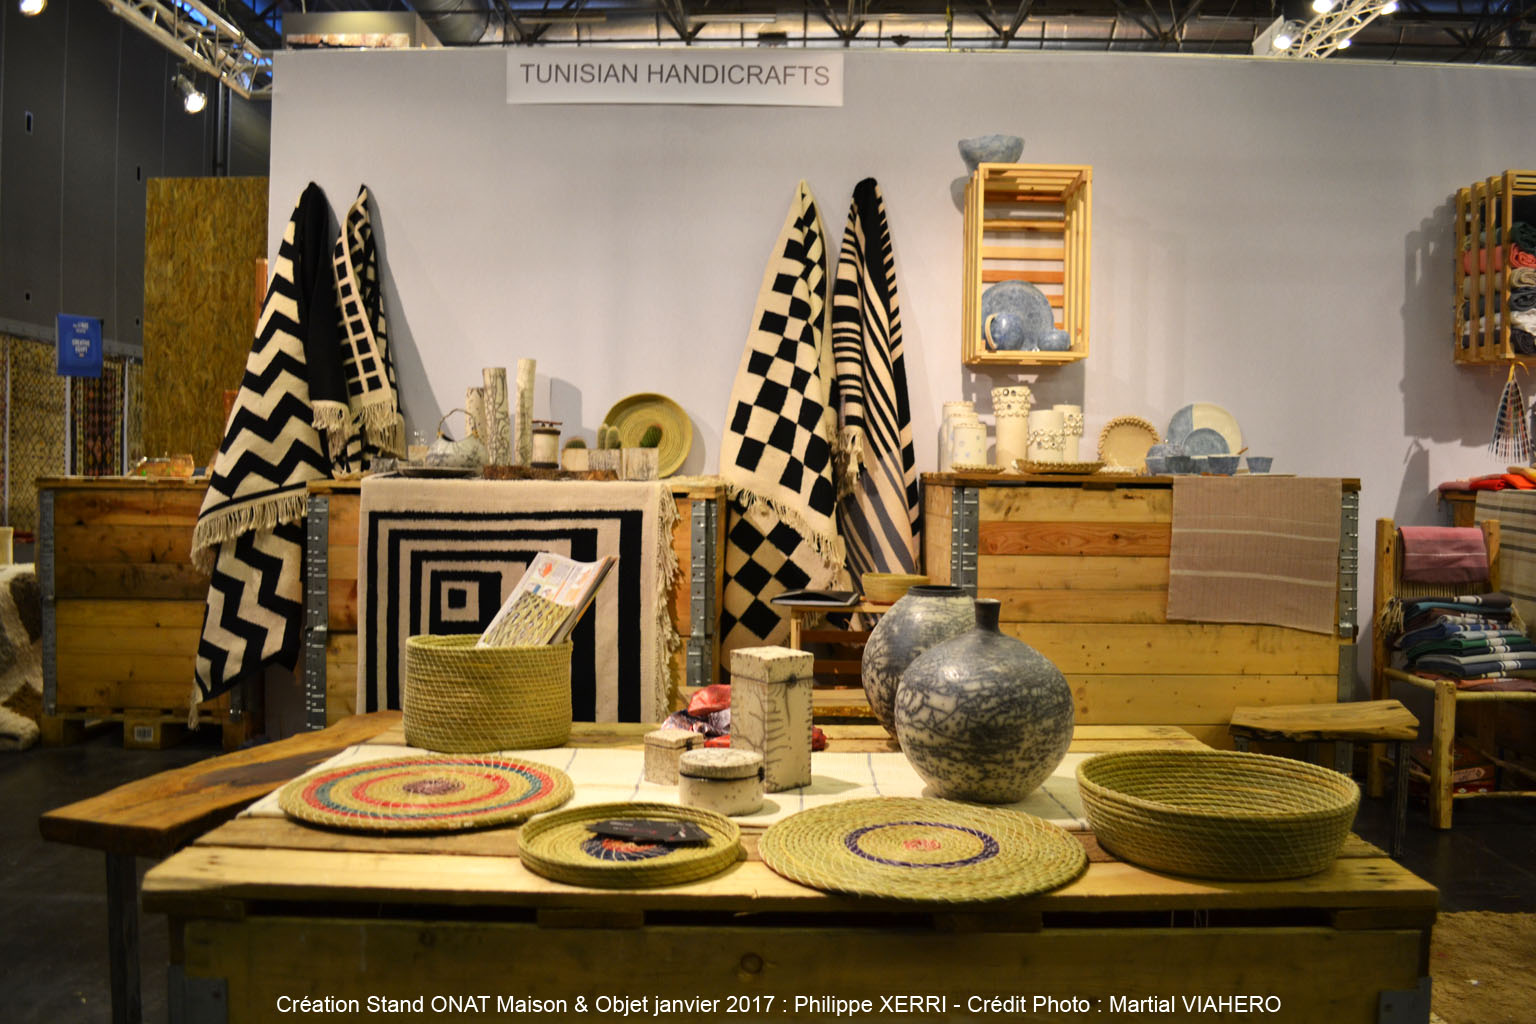 En photos la tunisie au salon maison et objets paris for A design and color salon little rock